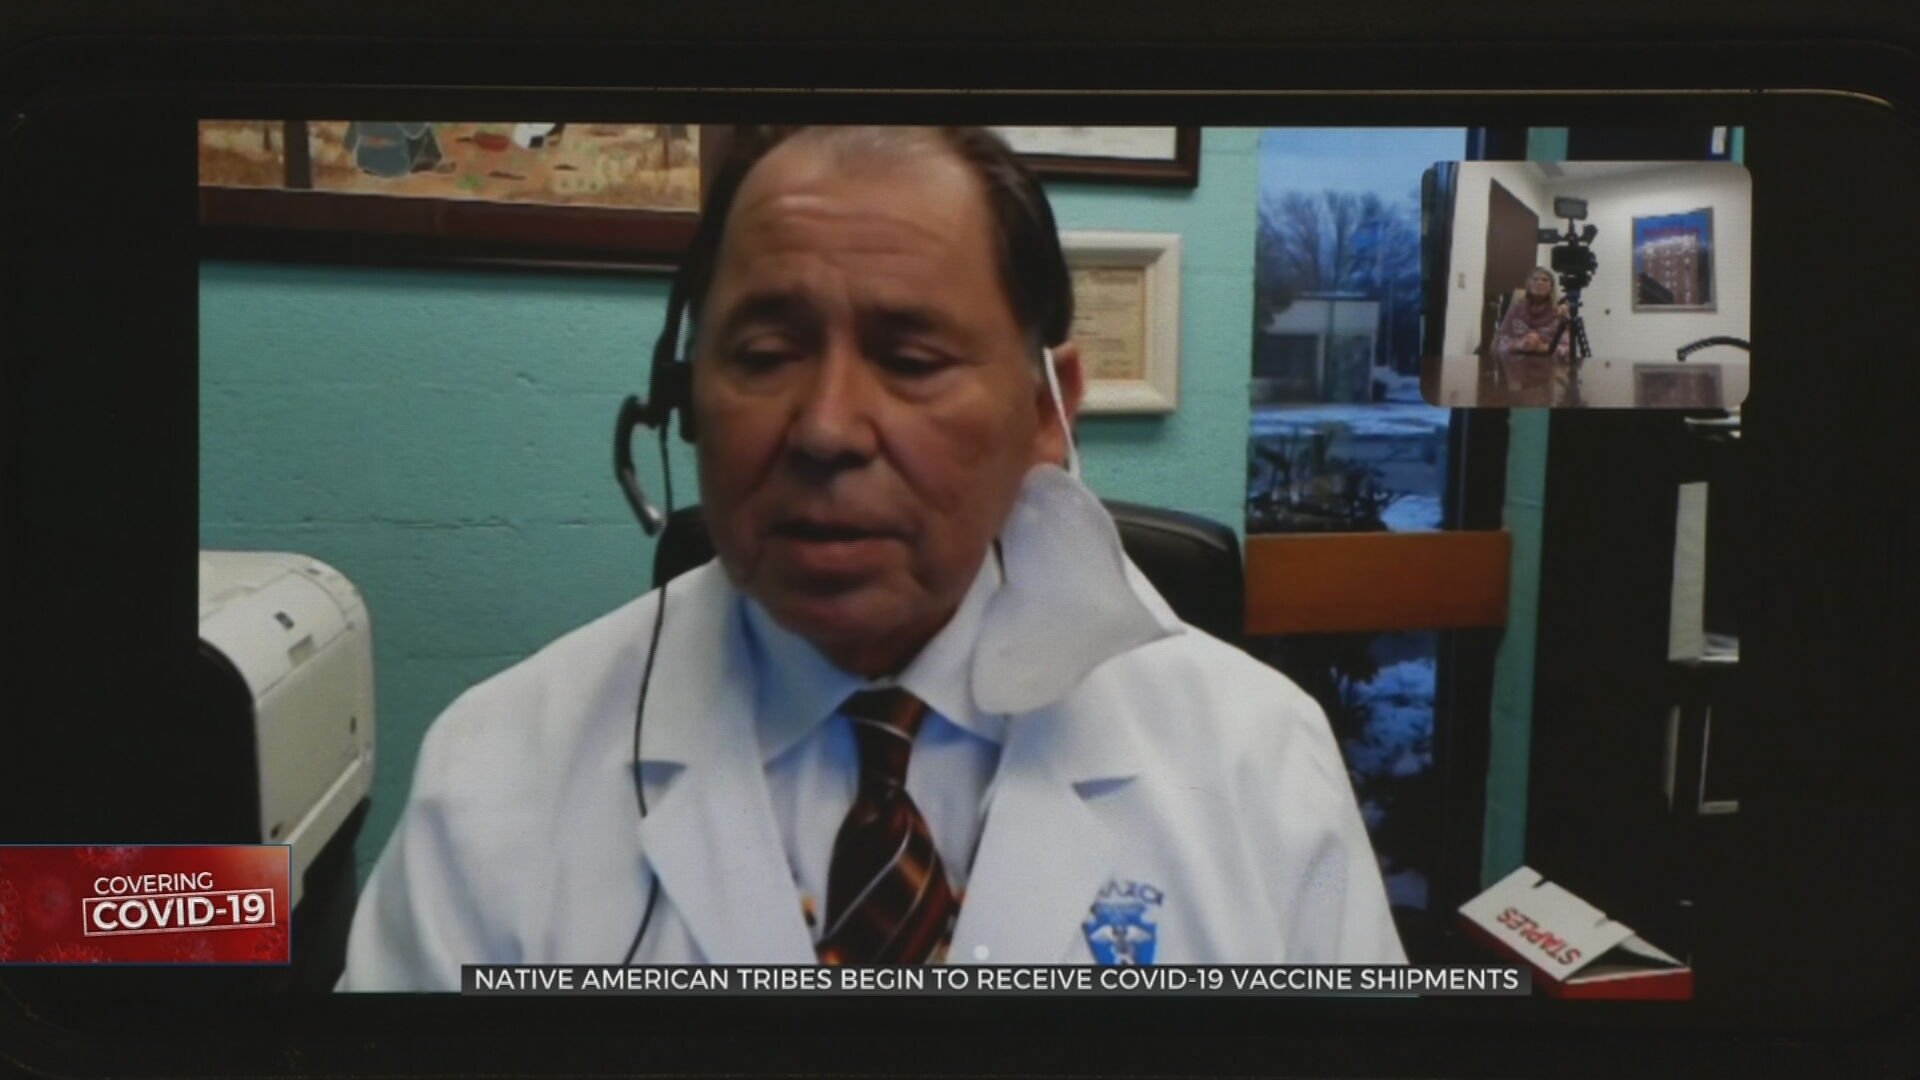 Native American Tribes Begin To Receive COVID-19 Vaccine Shipments